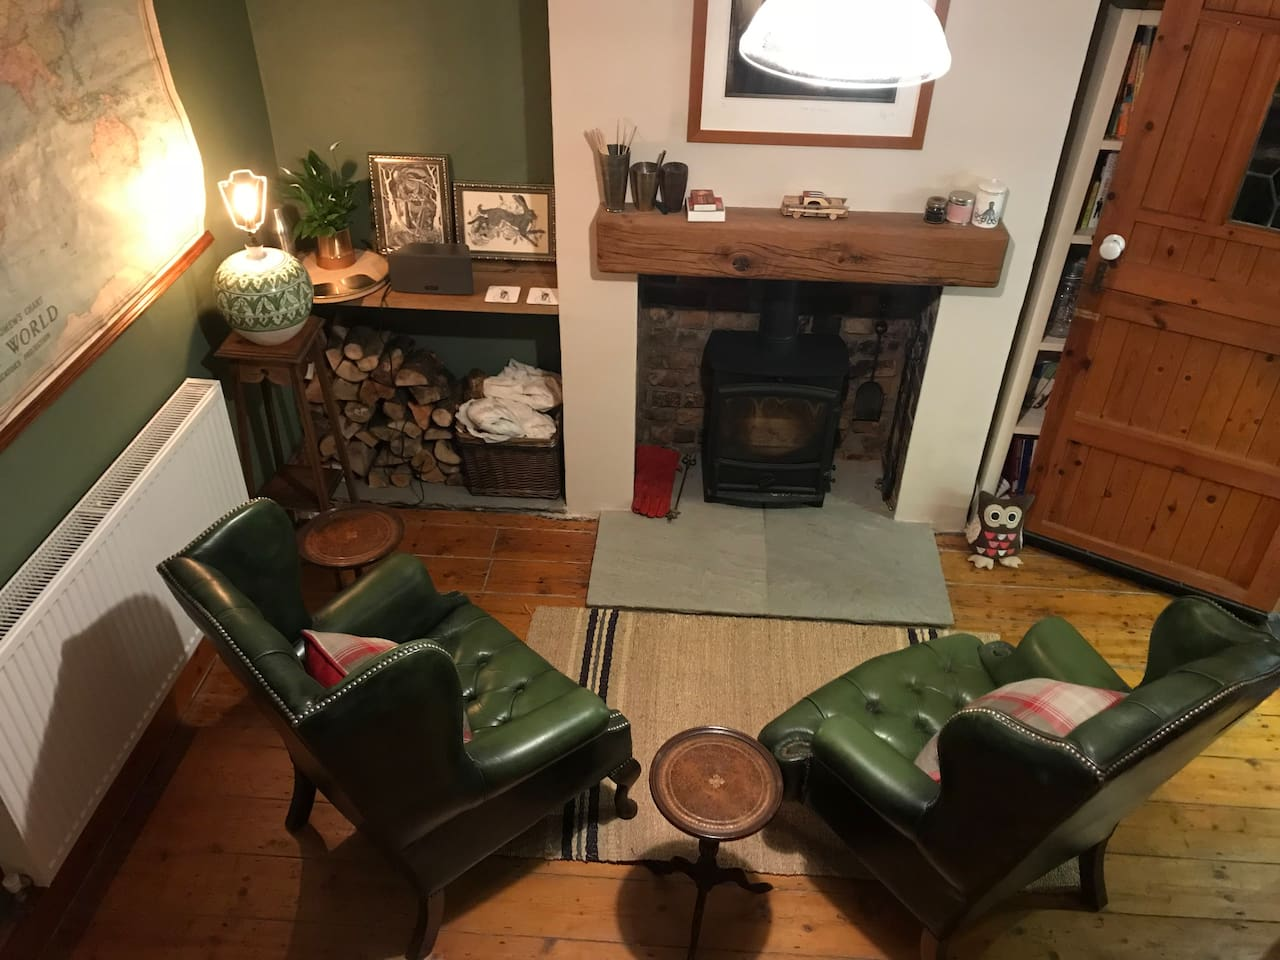 Cosy log burner and arm chairs